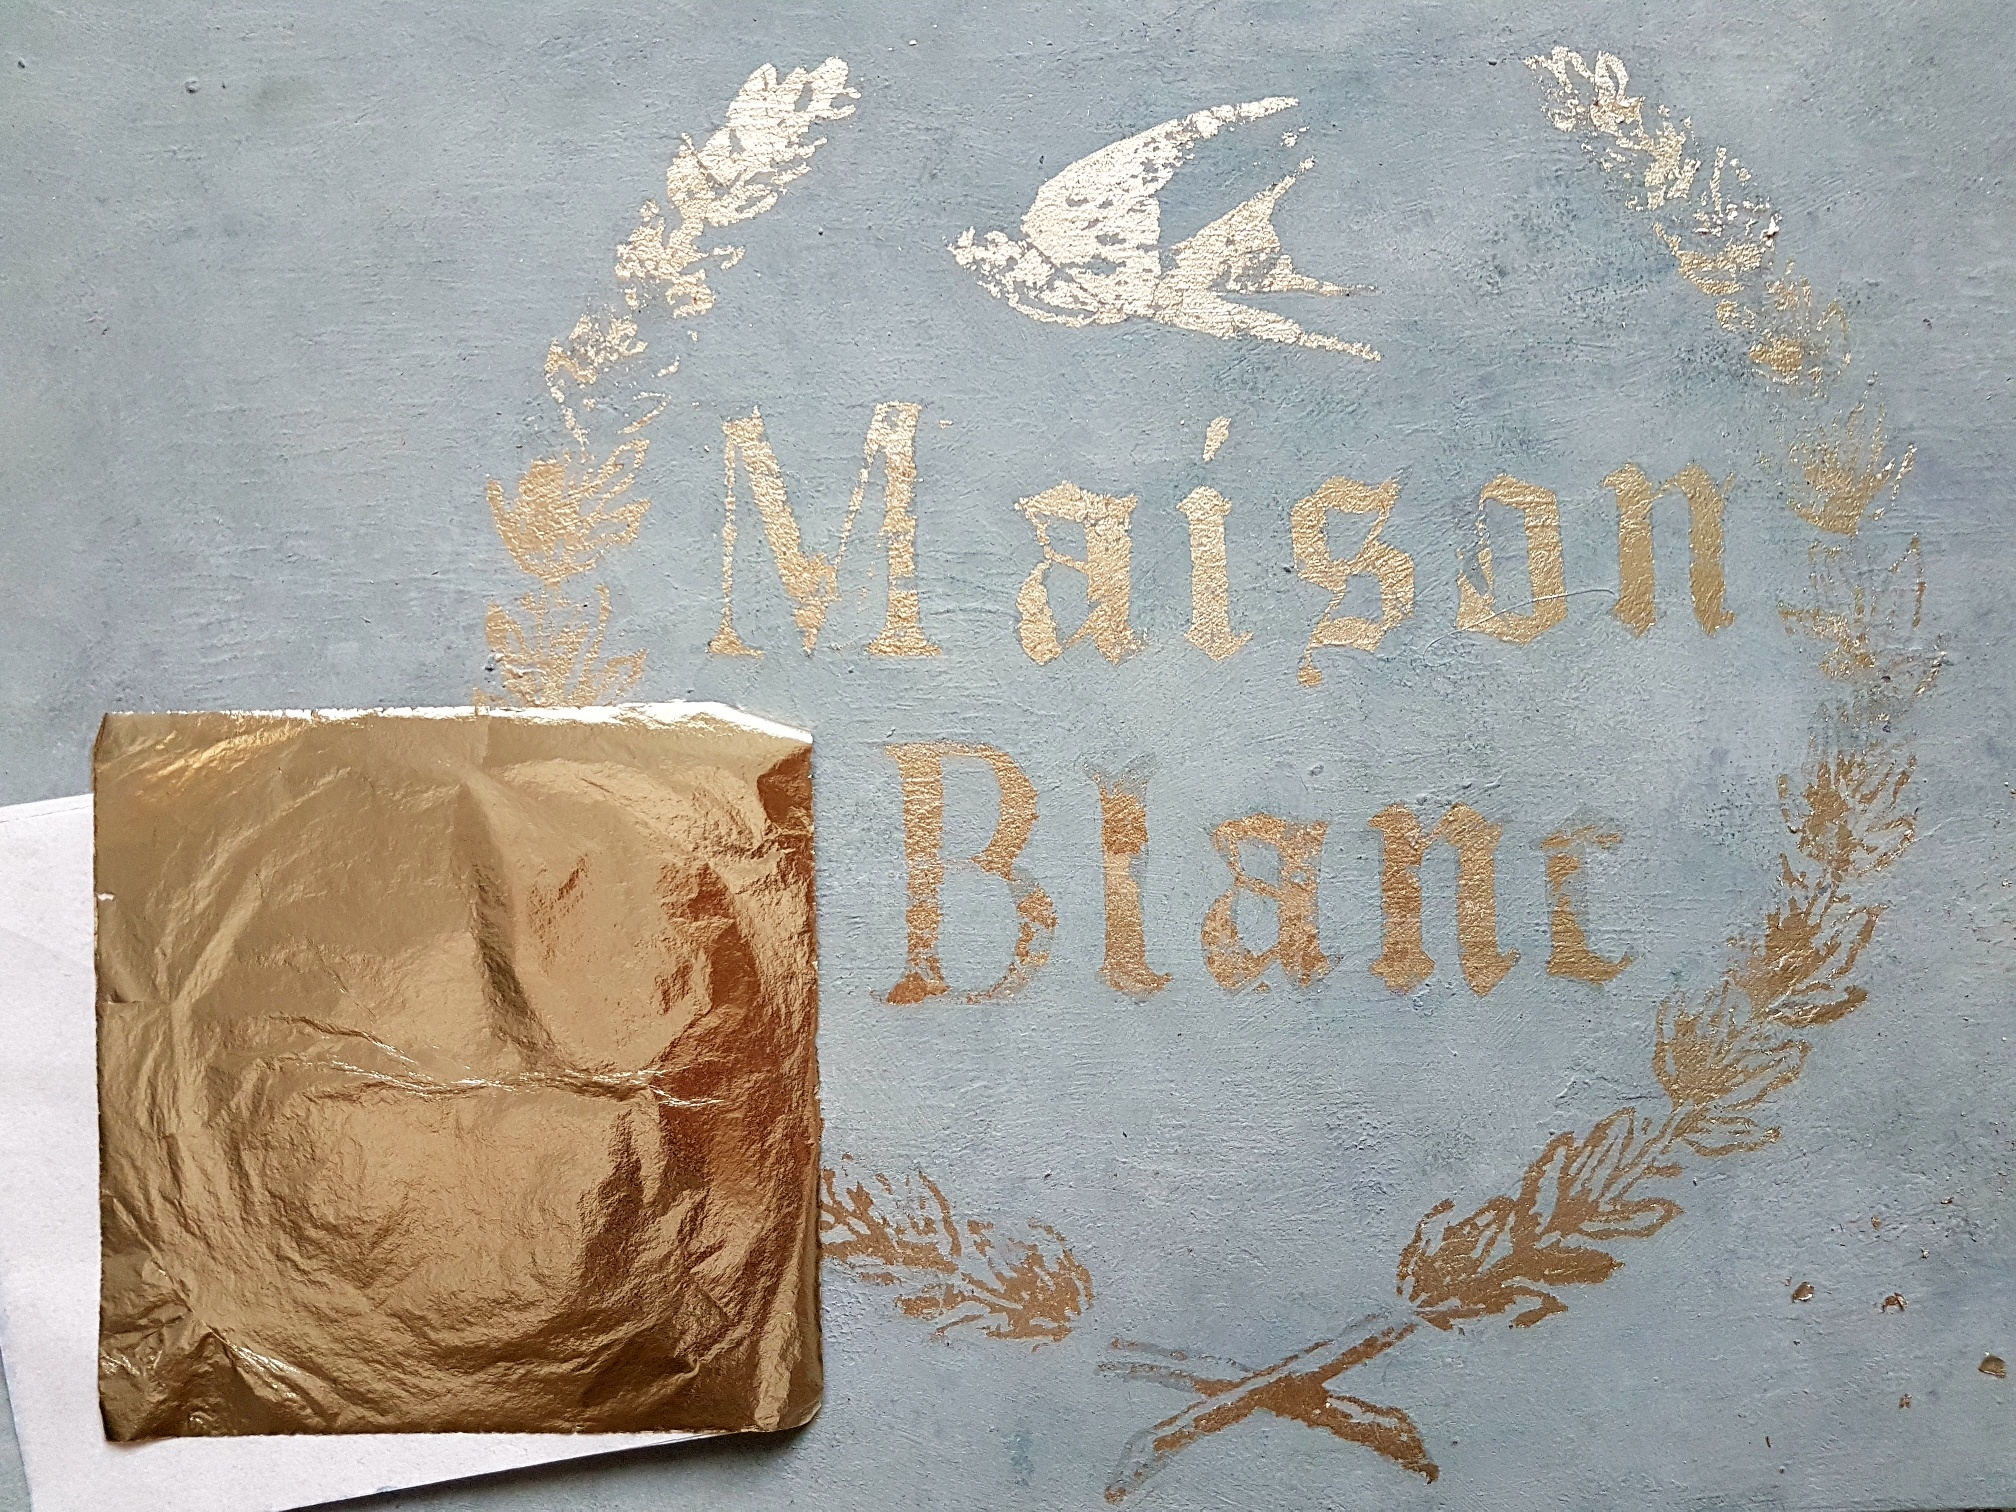 Stamp with gold leaf glue and add the gold leaf over the stamped images. For a vintage look, leave some areas bare.